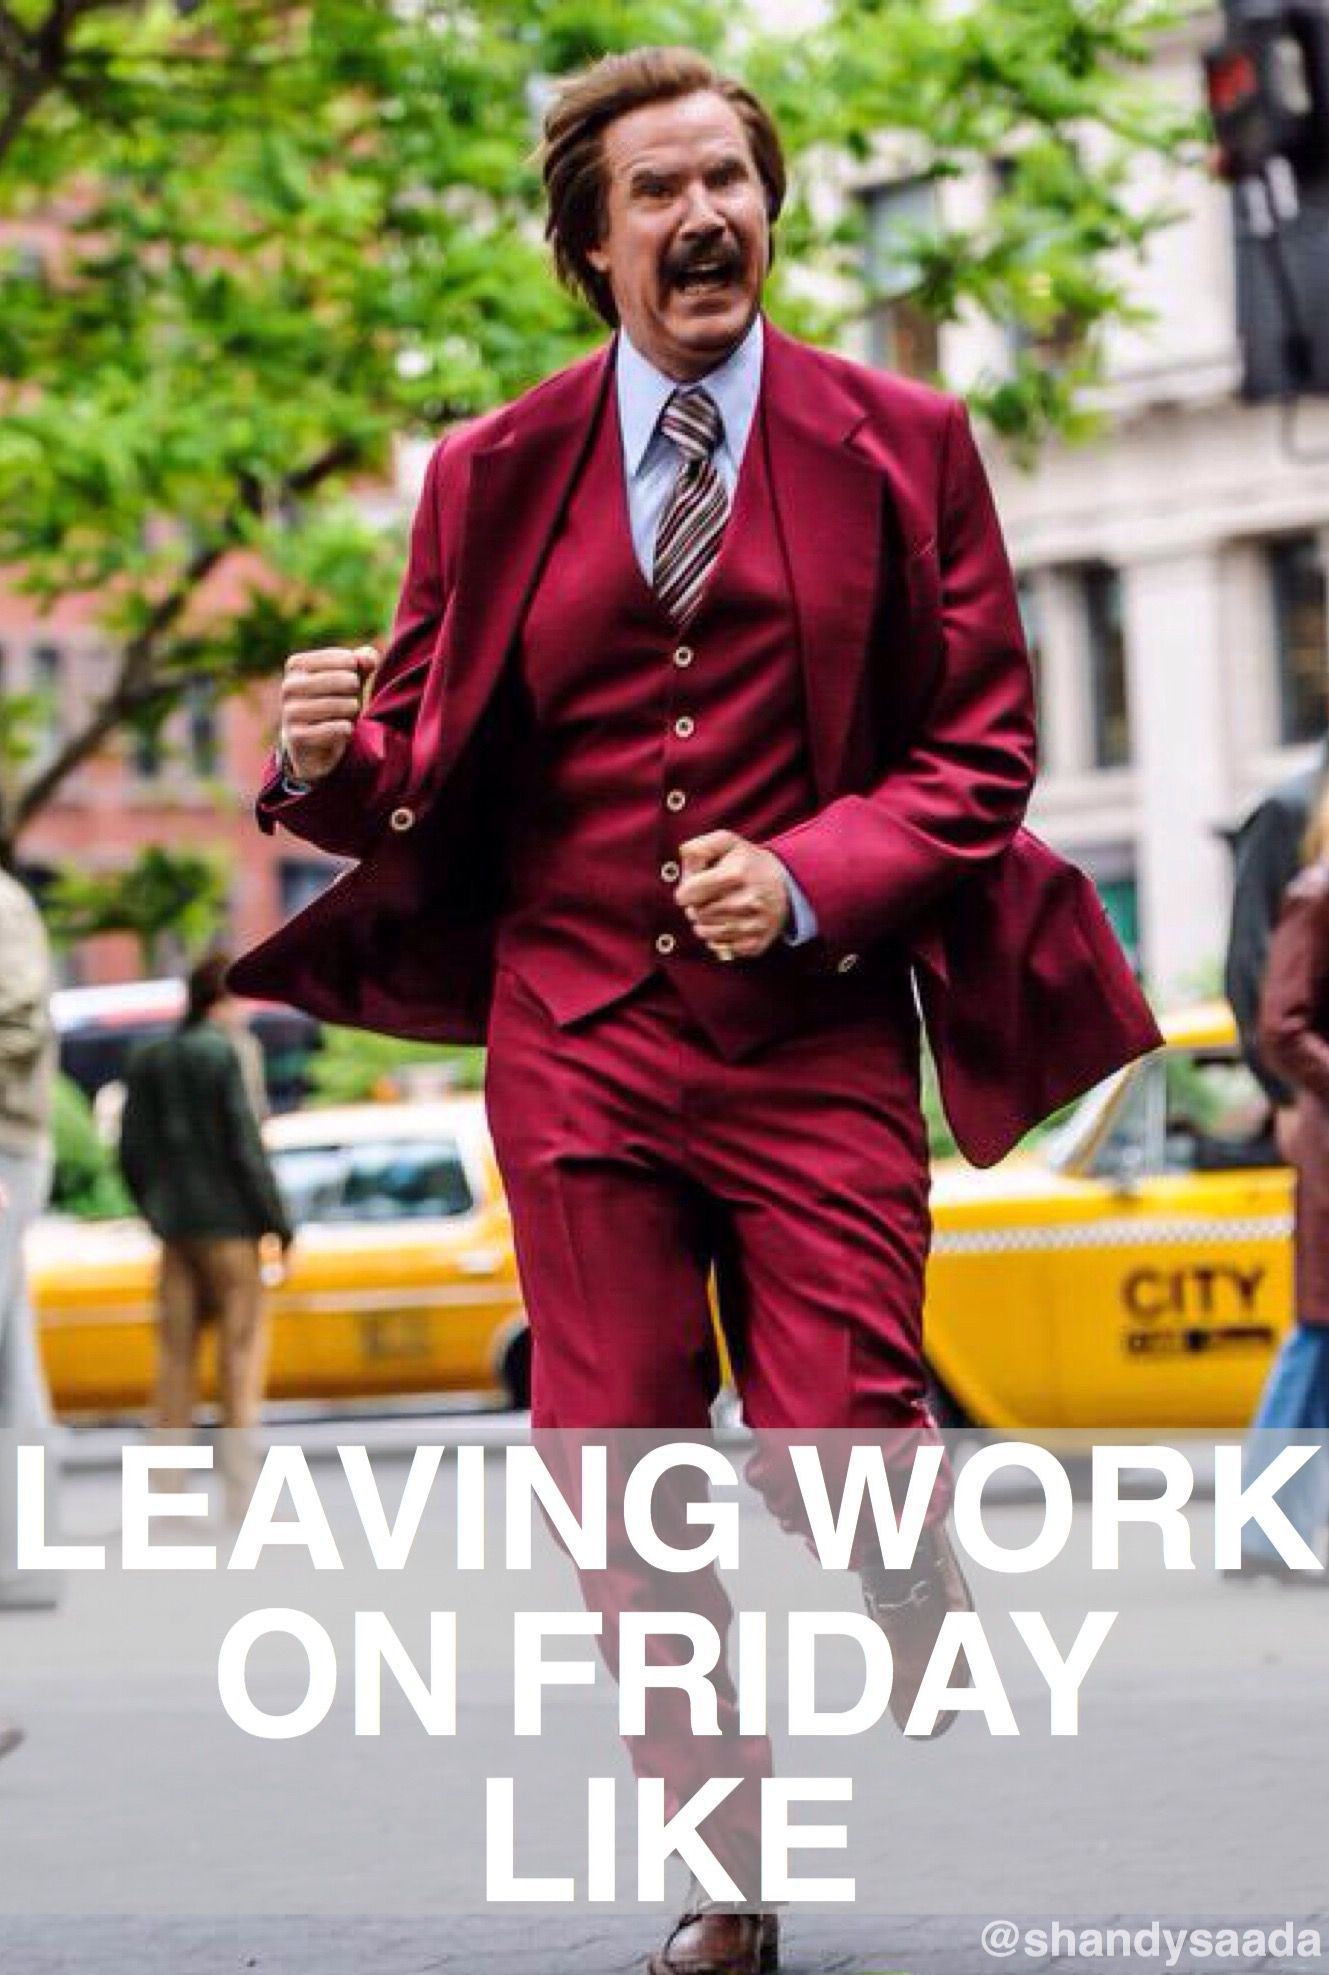 Me When I Leave Work On Friday Friday Humor Funny Friday Memes Leaving Work